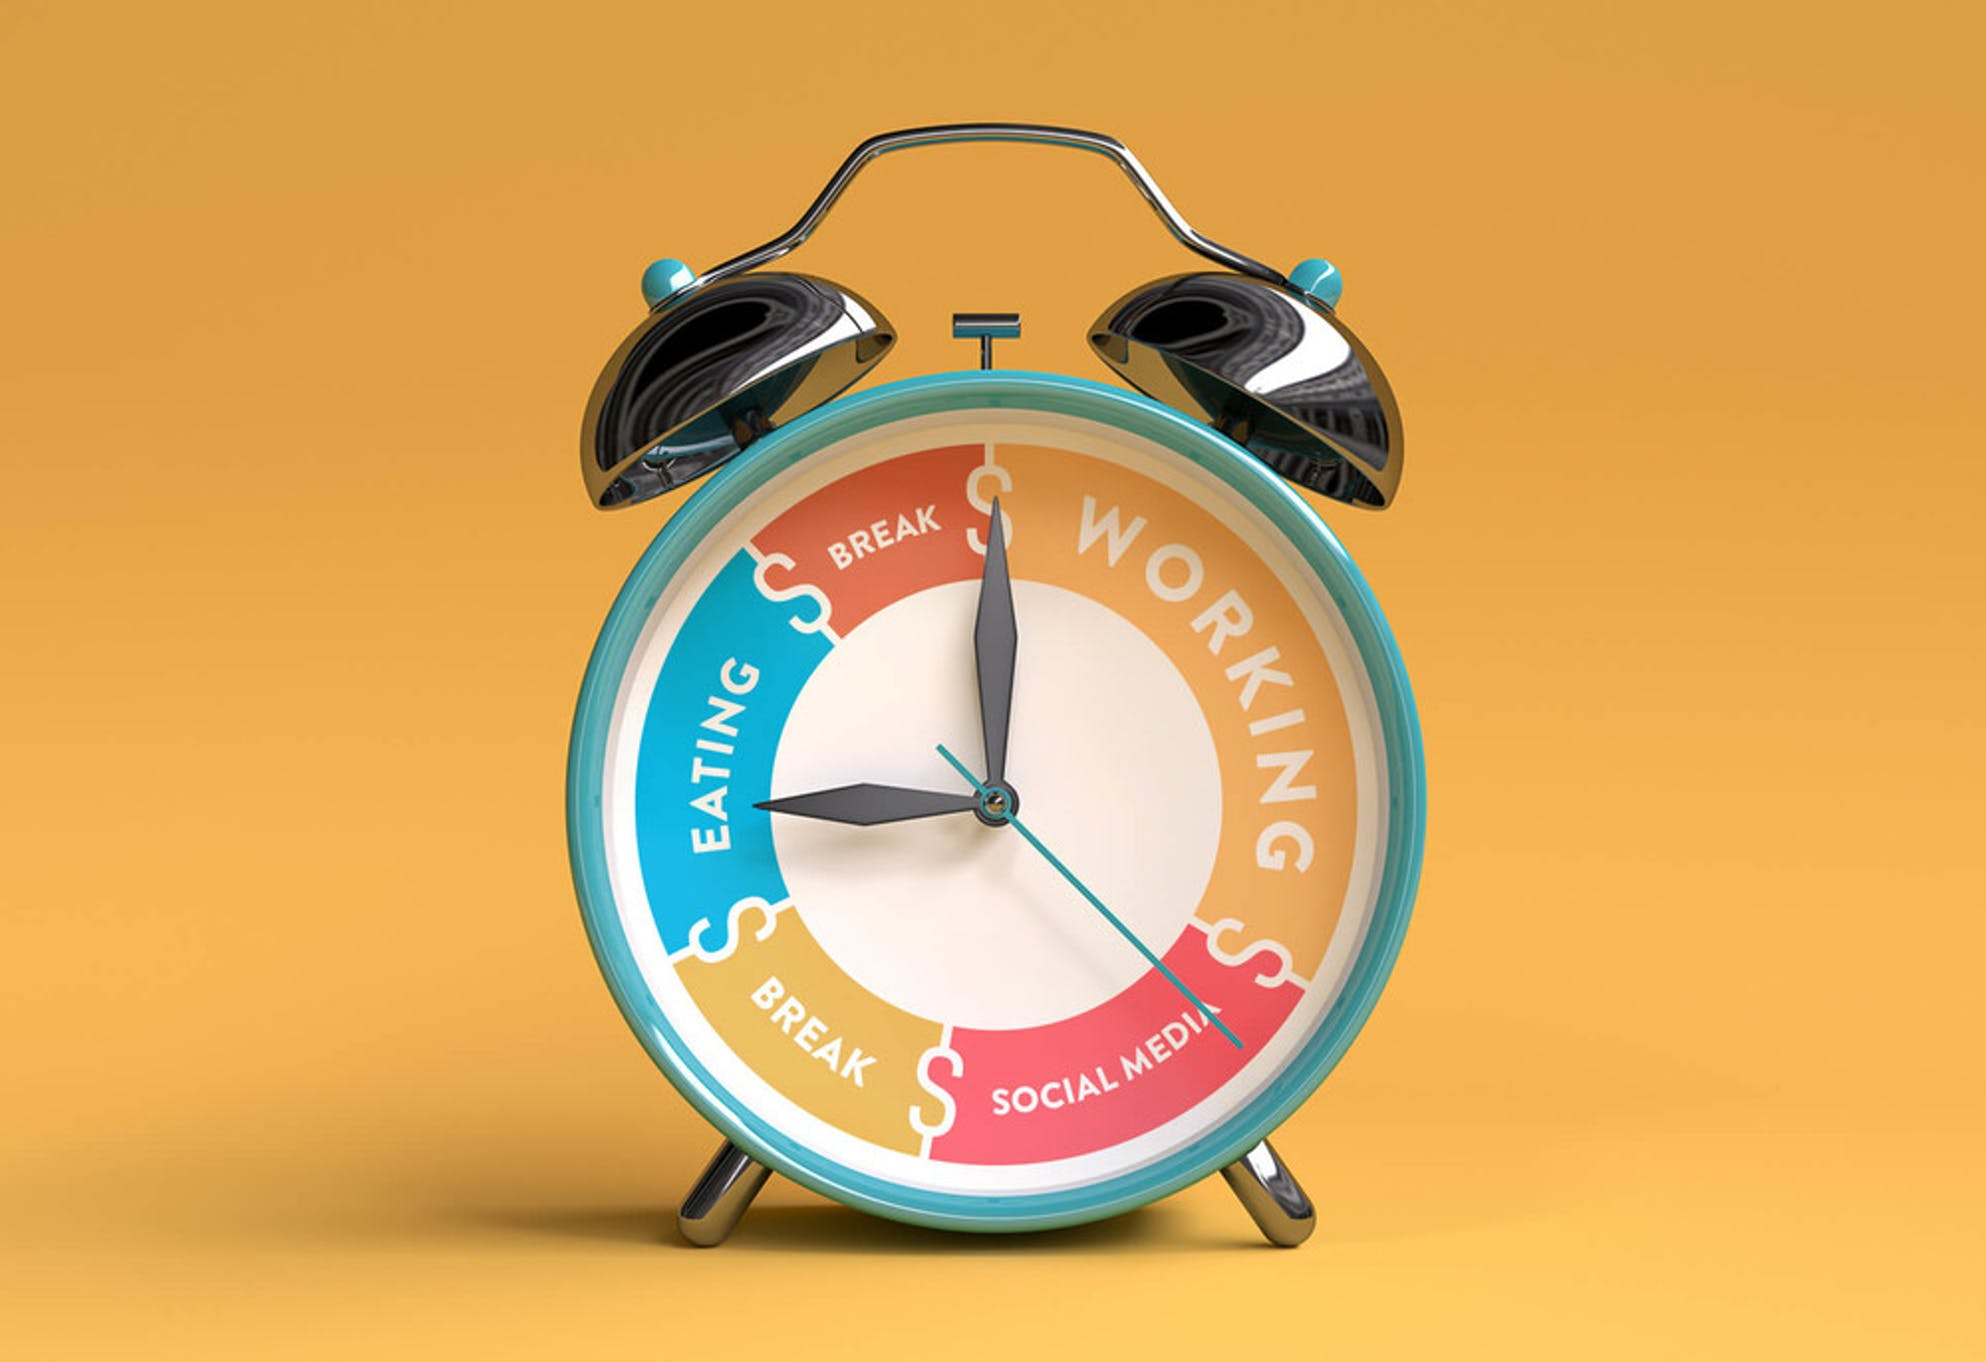 Clock demonstrates how to focus and prioritize your time between working, social media, breaks, and eating